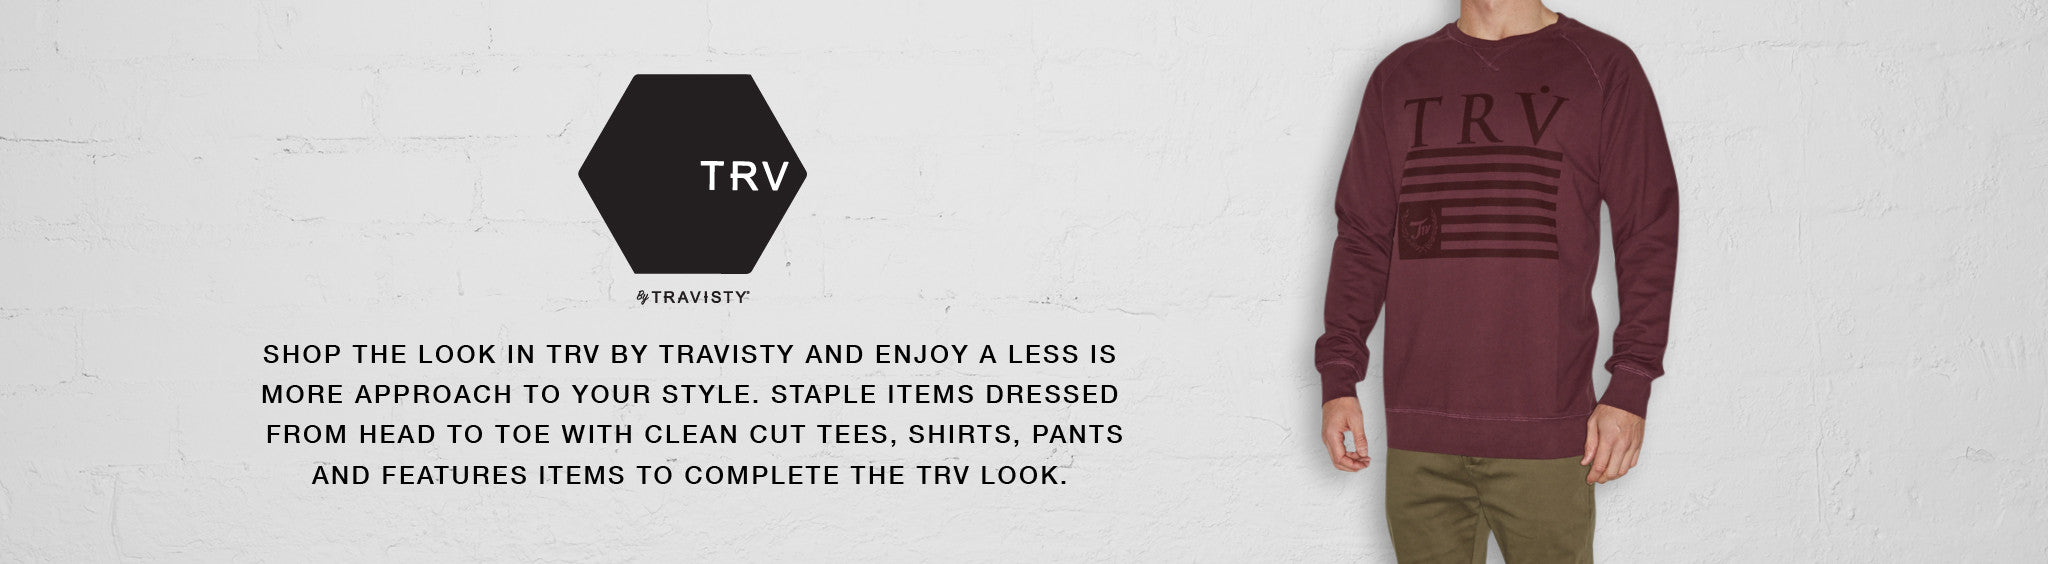 TRV By Travisty Crews